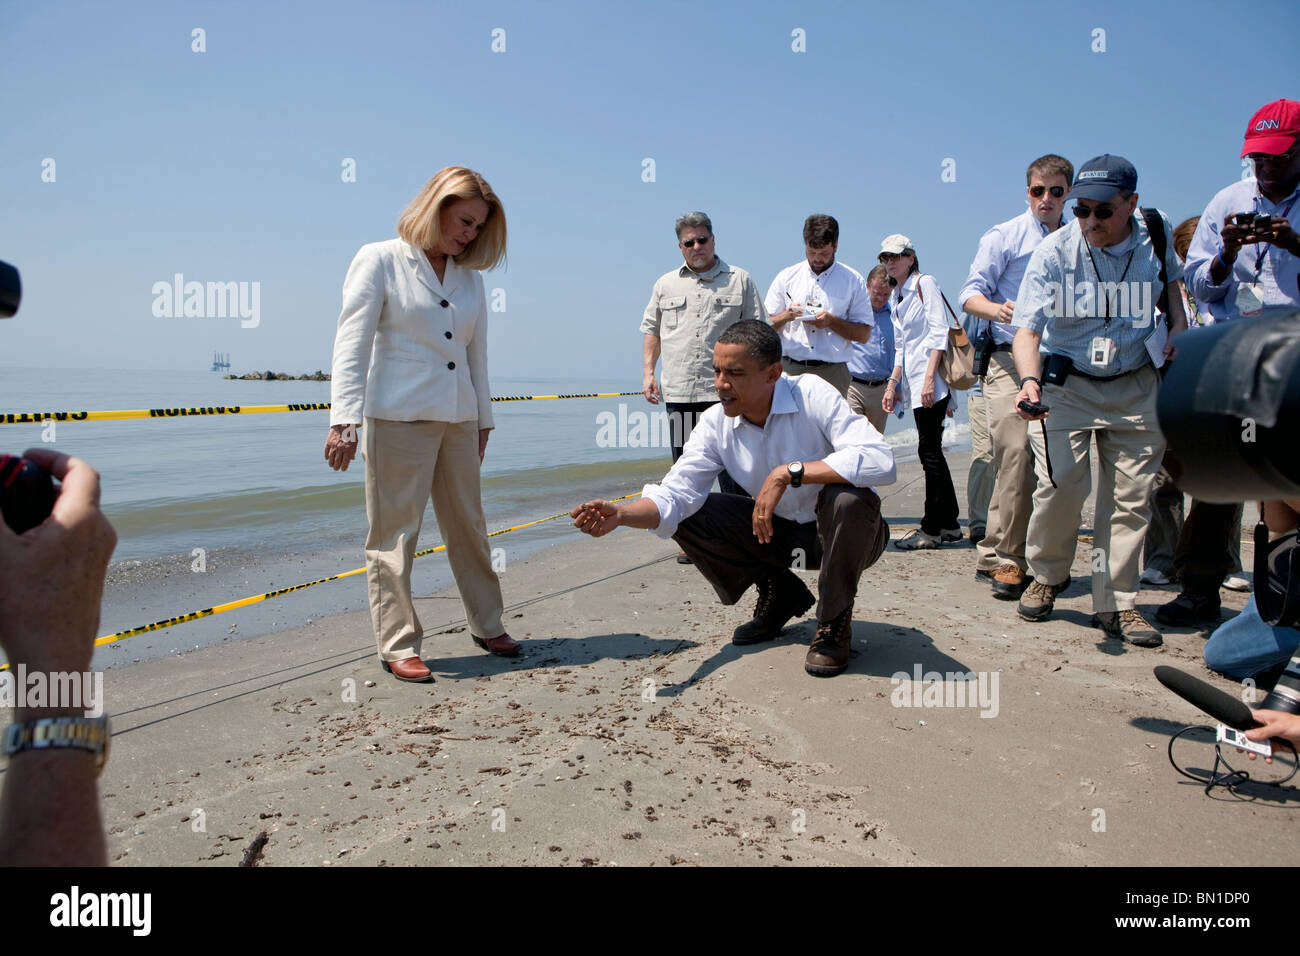 Barack Obama and Lafourche Parish President Charlotte Randolf, left, inspect a tar ball during the BP oil spill - Stock Image